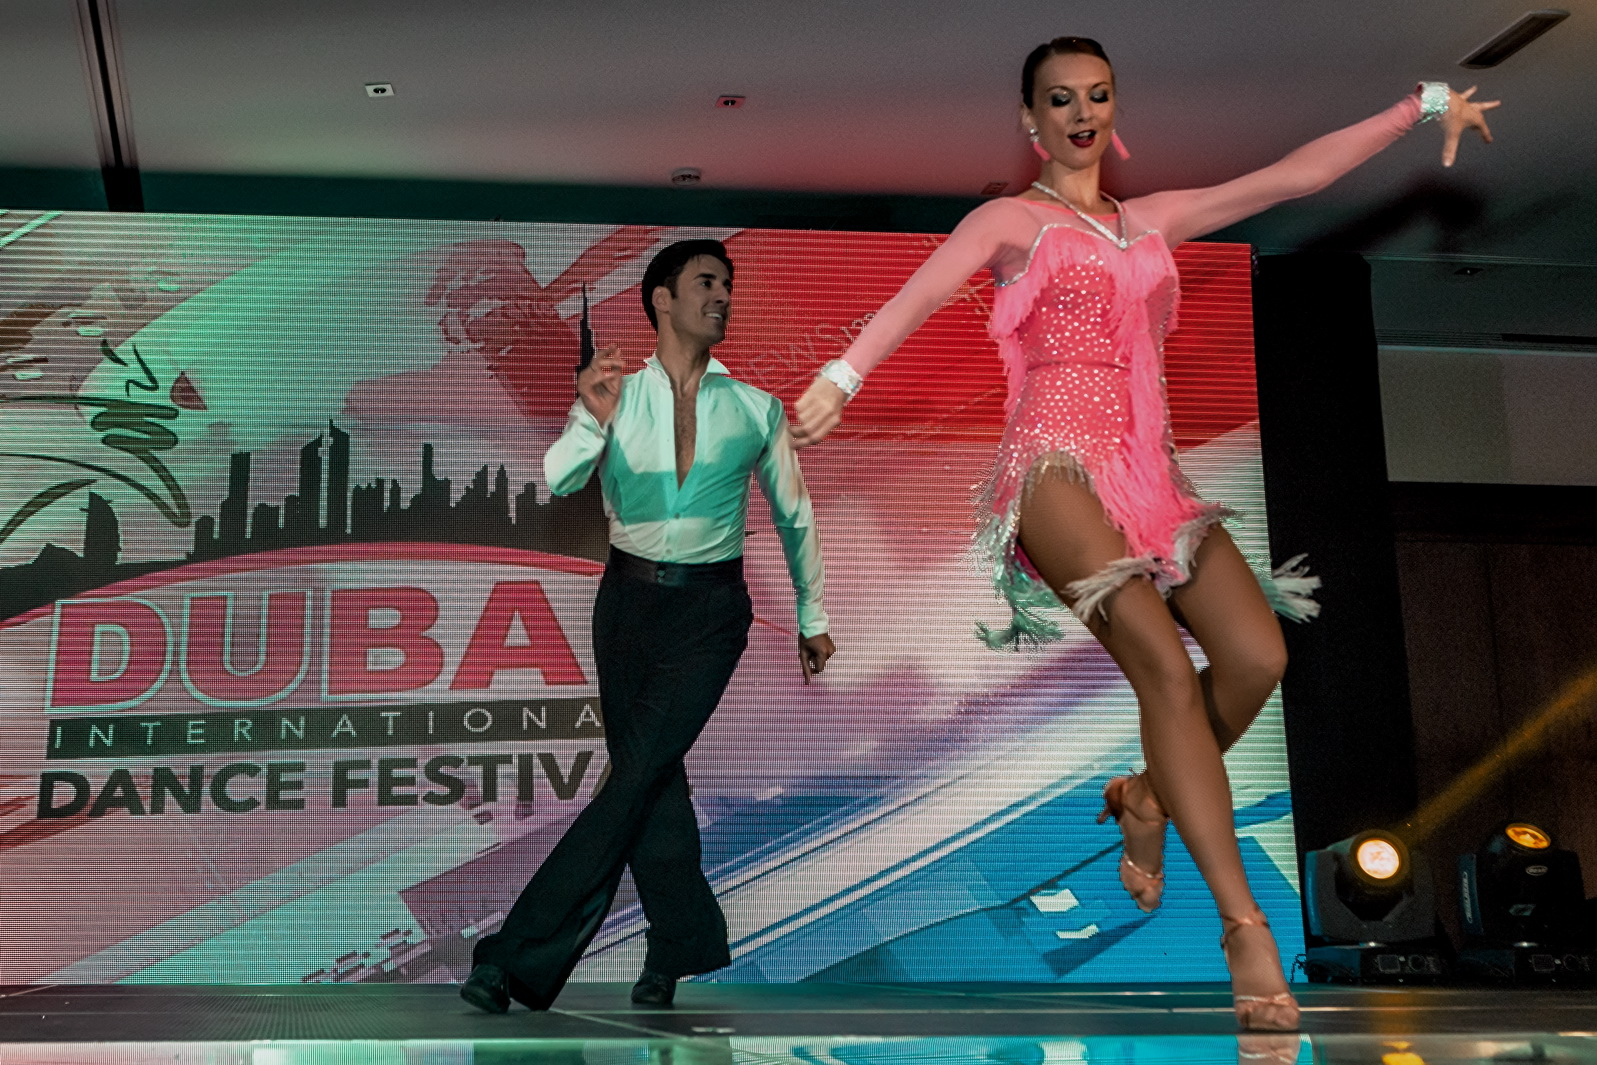 The adult team: Martina and Ruslan at Dubai International Dance Festival 2015